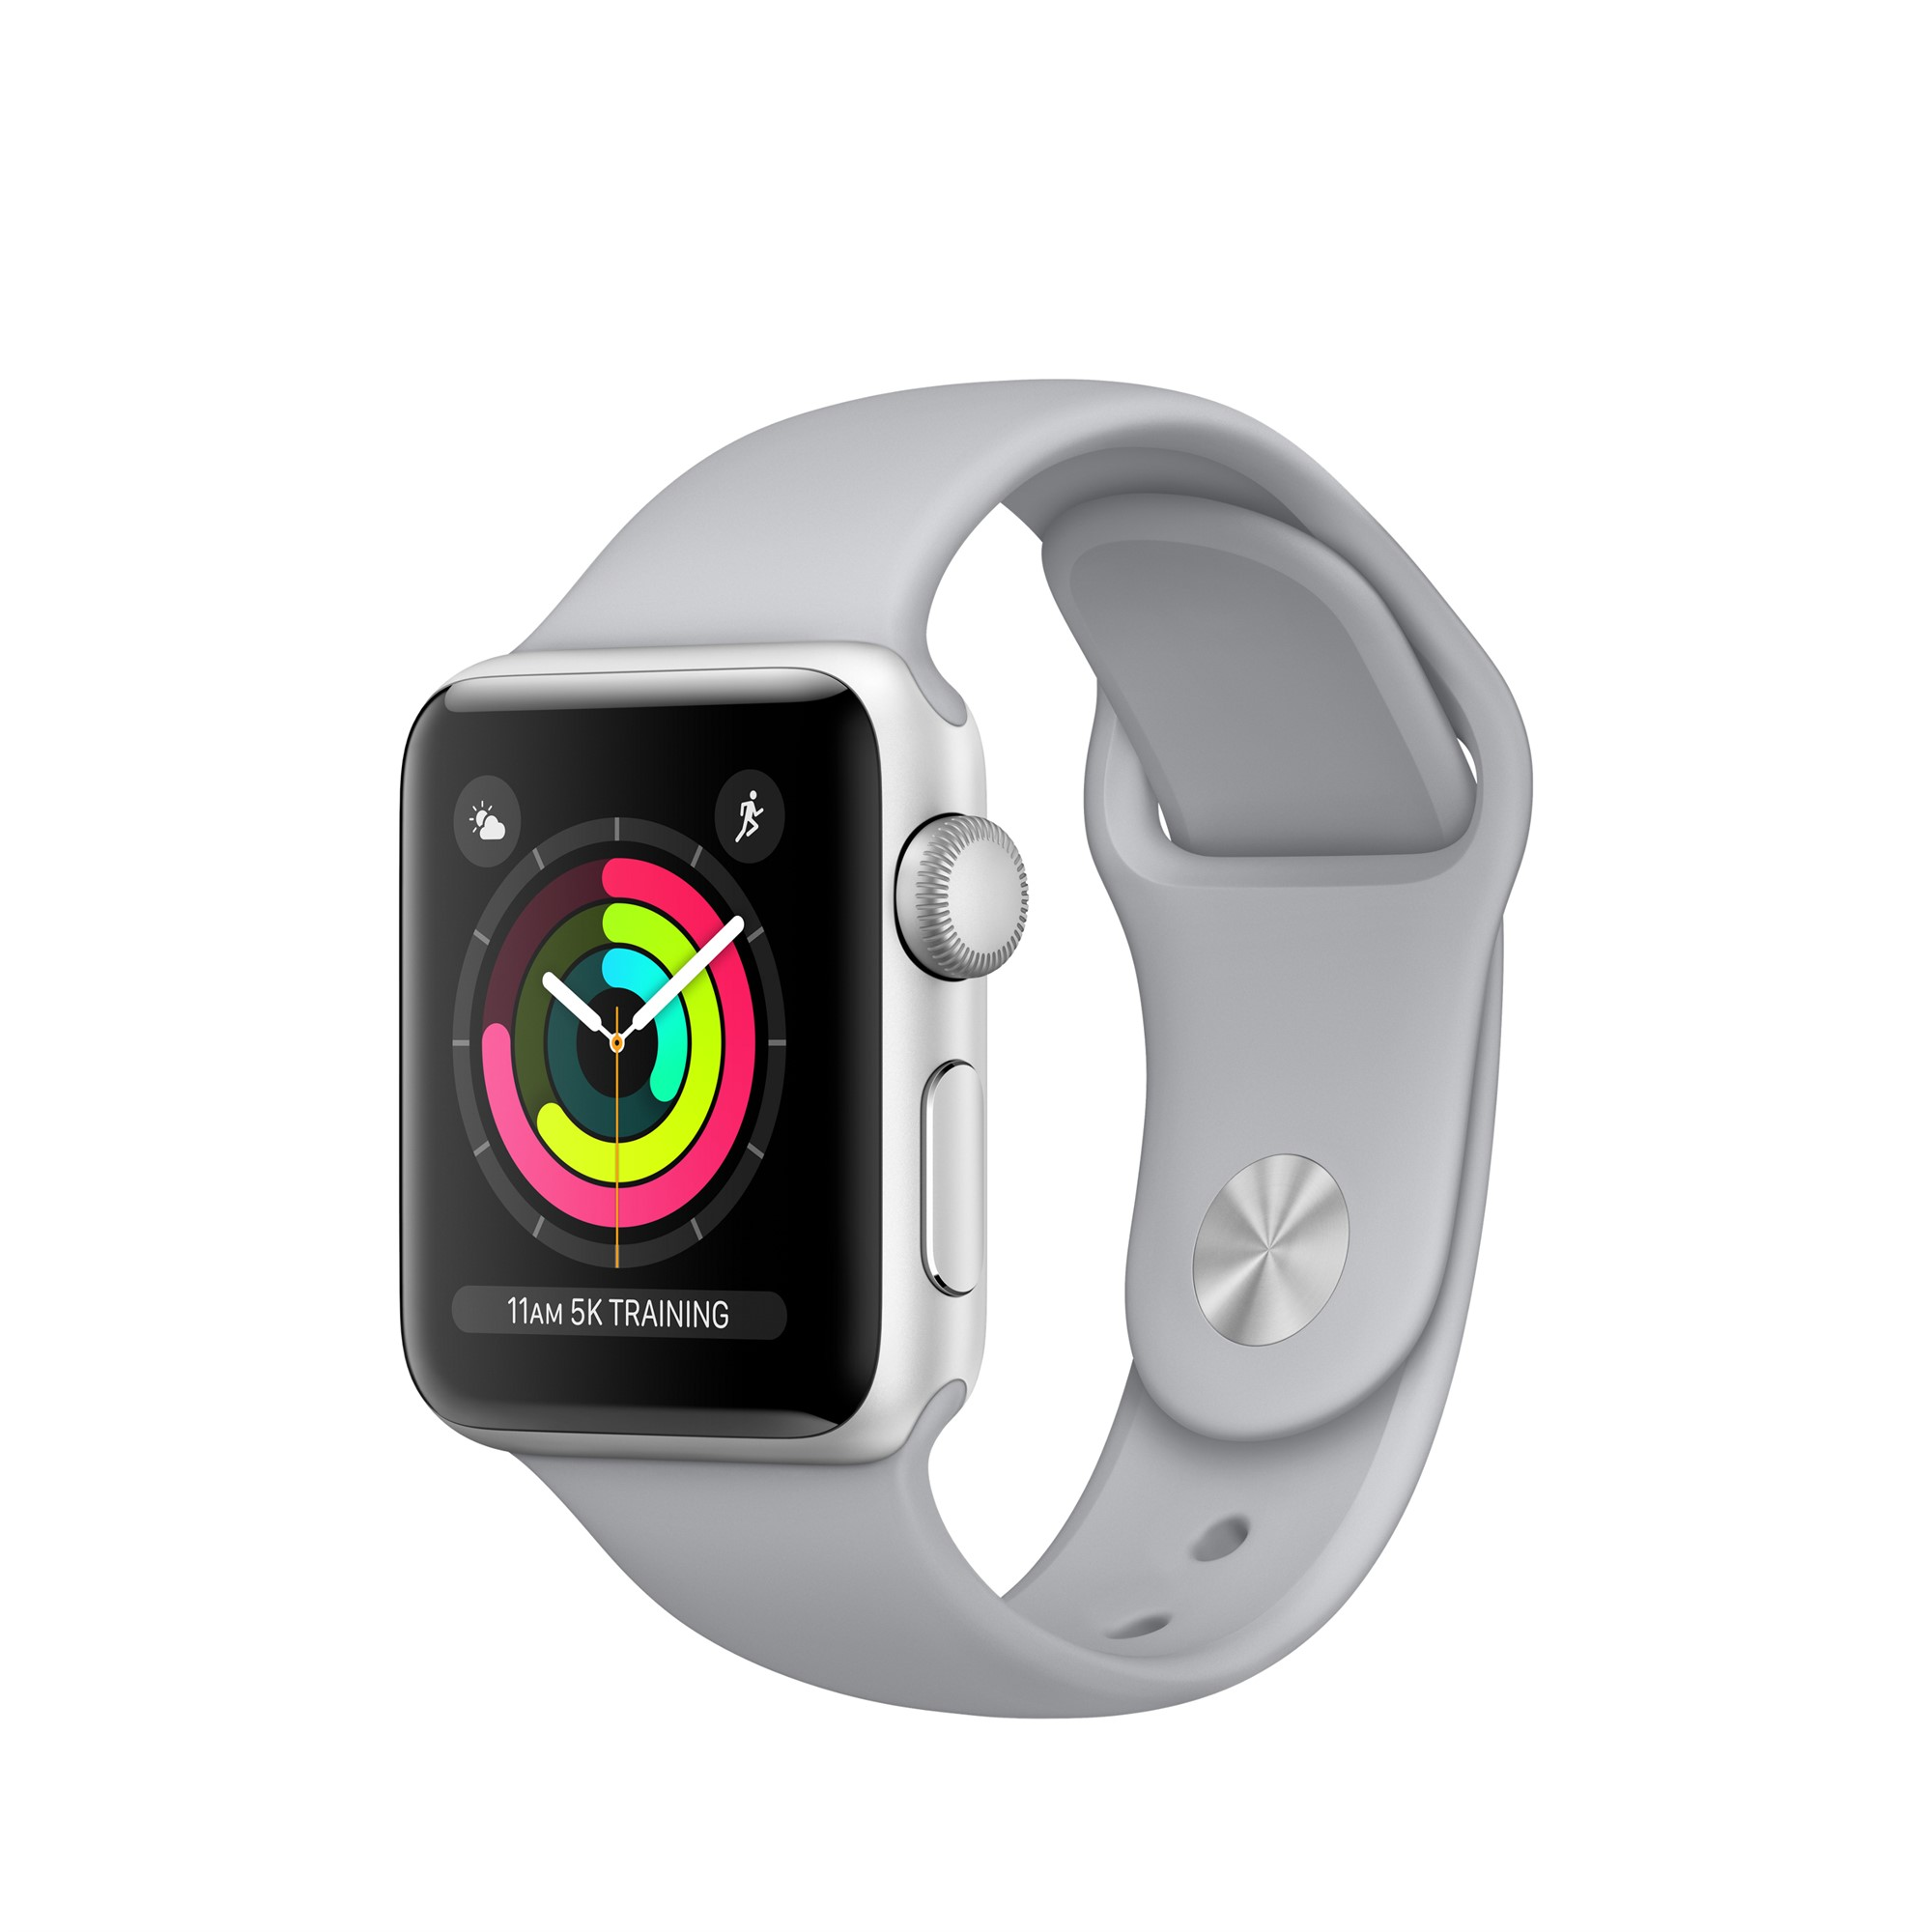 APPLE WATCH SERIES 3 OLED GPS (SATELLITE) SILVER SMARTWATCH